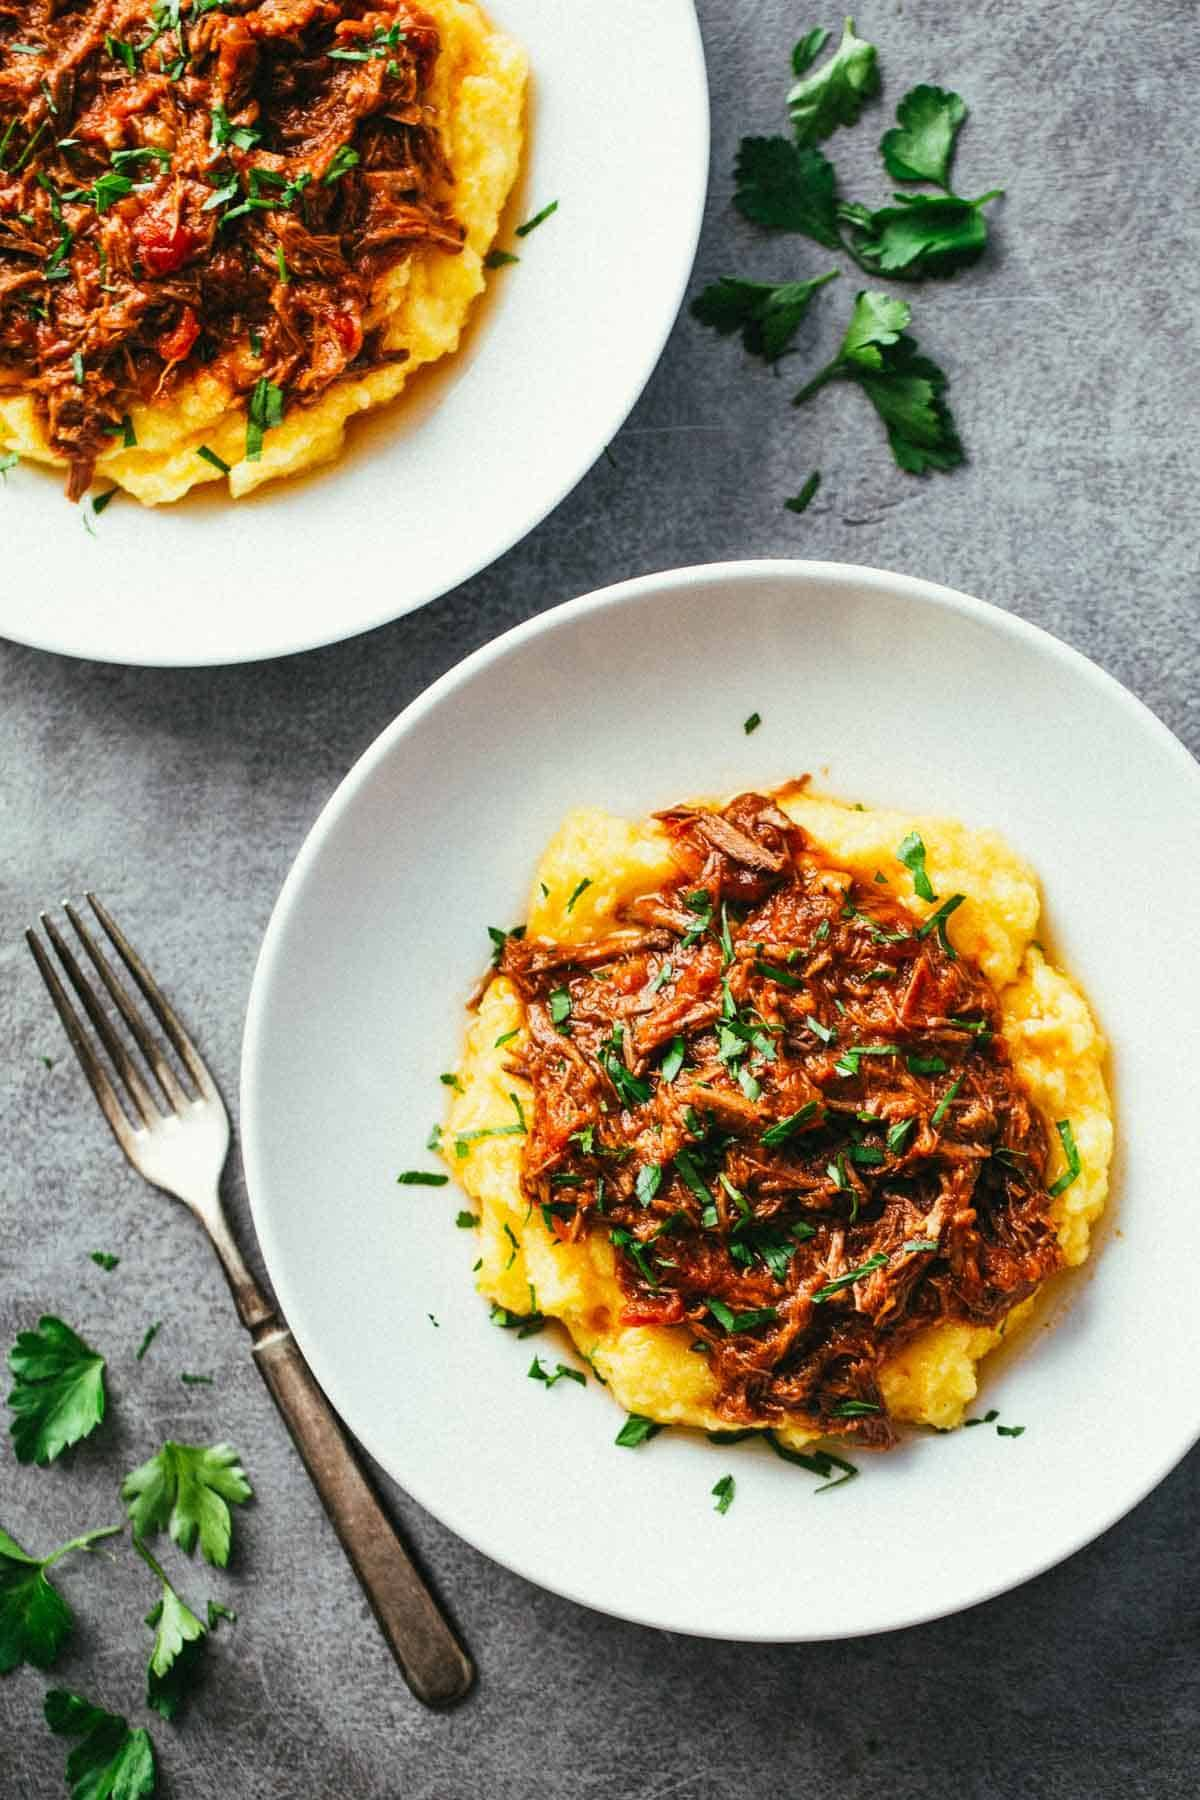 Crockpot Braised Beef Ragu with Polenta - super easy to make and perfect for winter weeknights!